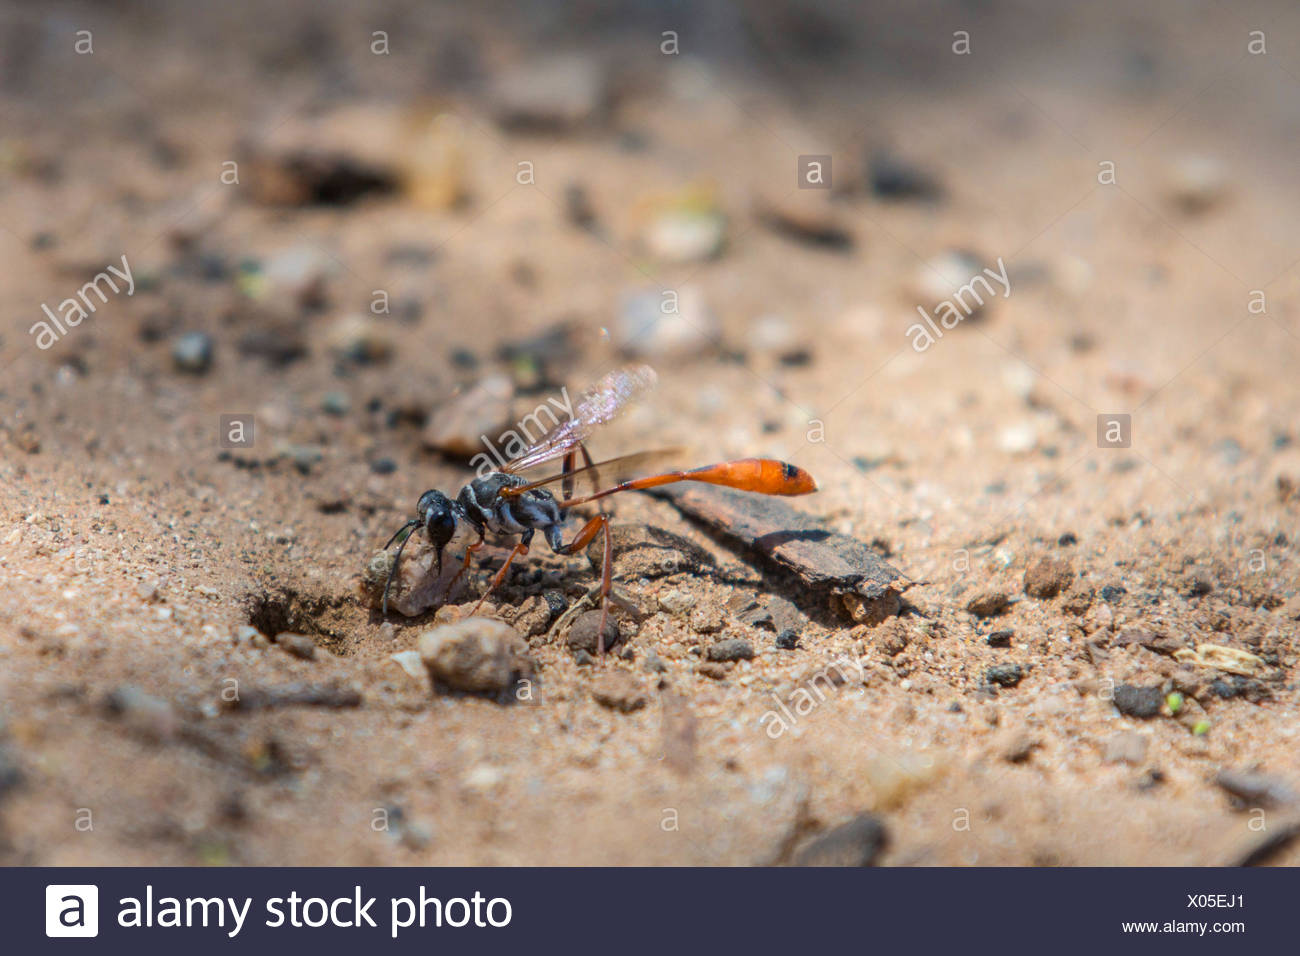 digger wasps, hunting wasps (Sphecidae, Sphegidae), closing a prey hiding-place with a stone, USA, Arizona, Phoenix Stock Photo